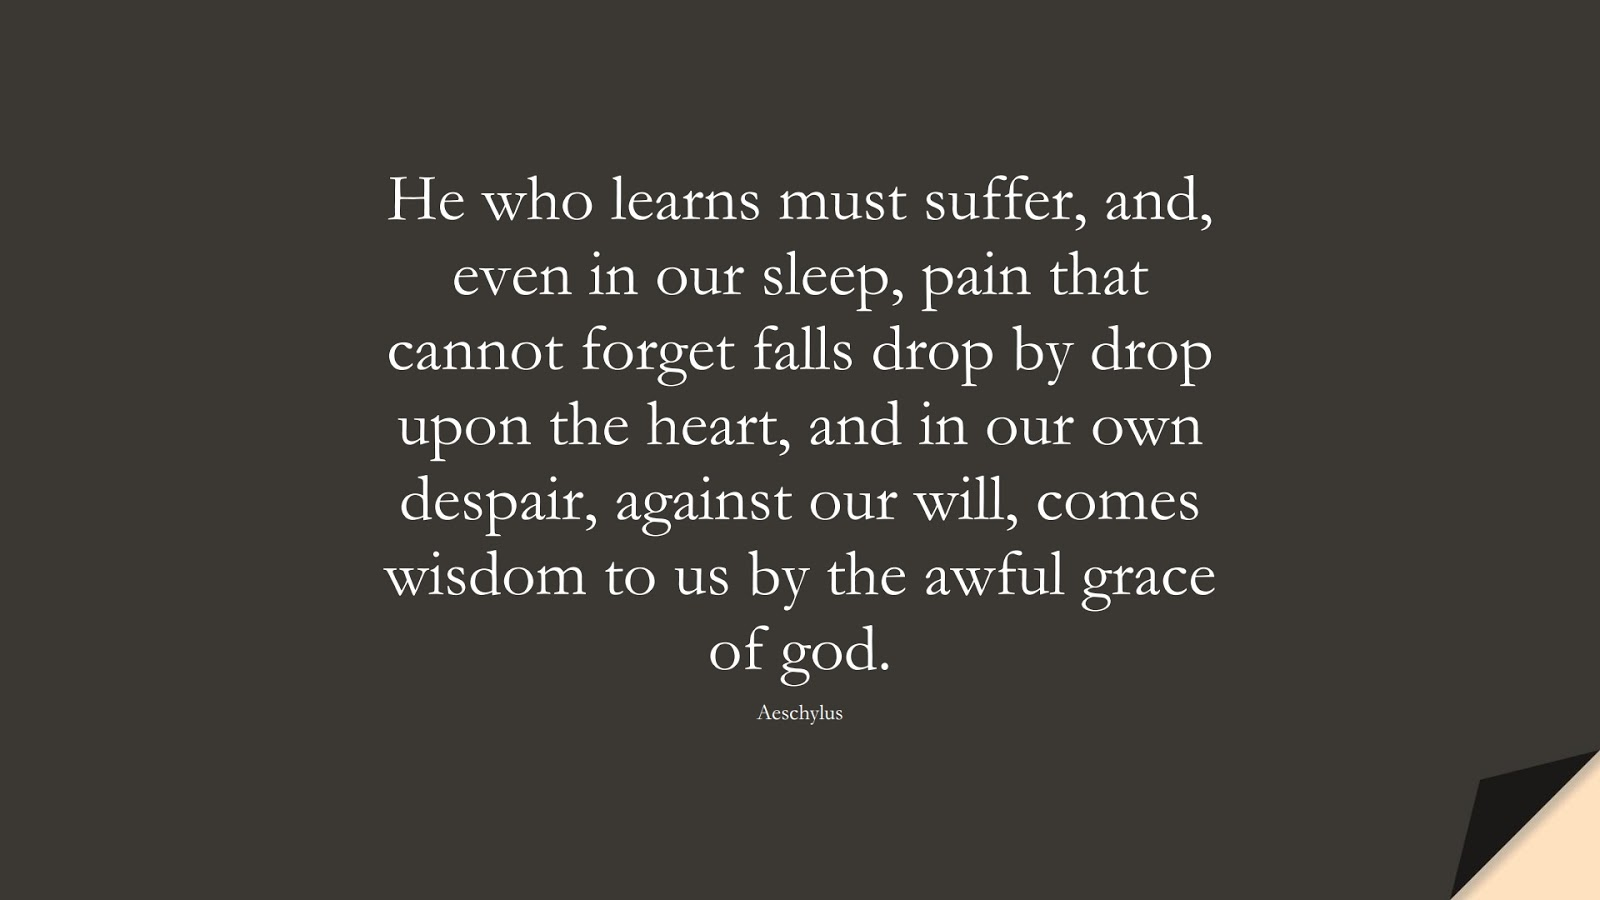 He who learns must suffer, and, even in our sleep, pain that cannot forget falls drop by drop upon the heart, and in our own despair, against our will, comes wisdom to us by the awful grace of god. (Aeschylus);  #WordsofWisdom